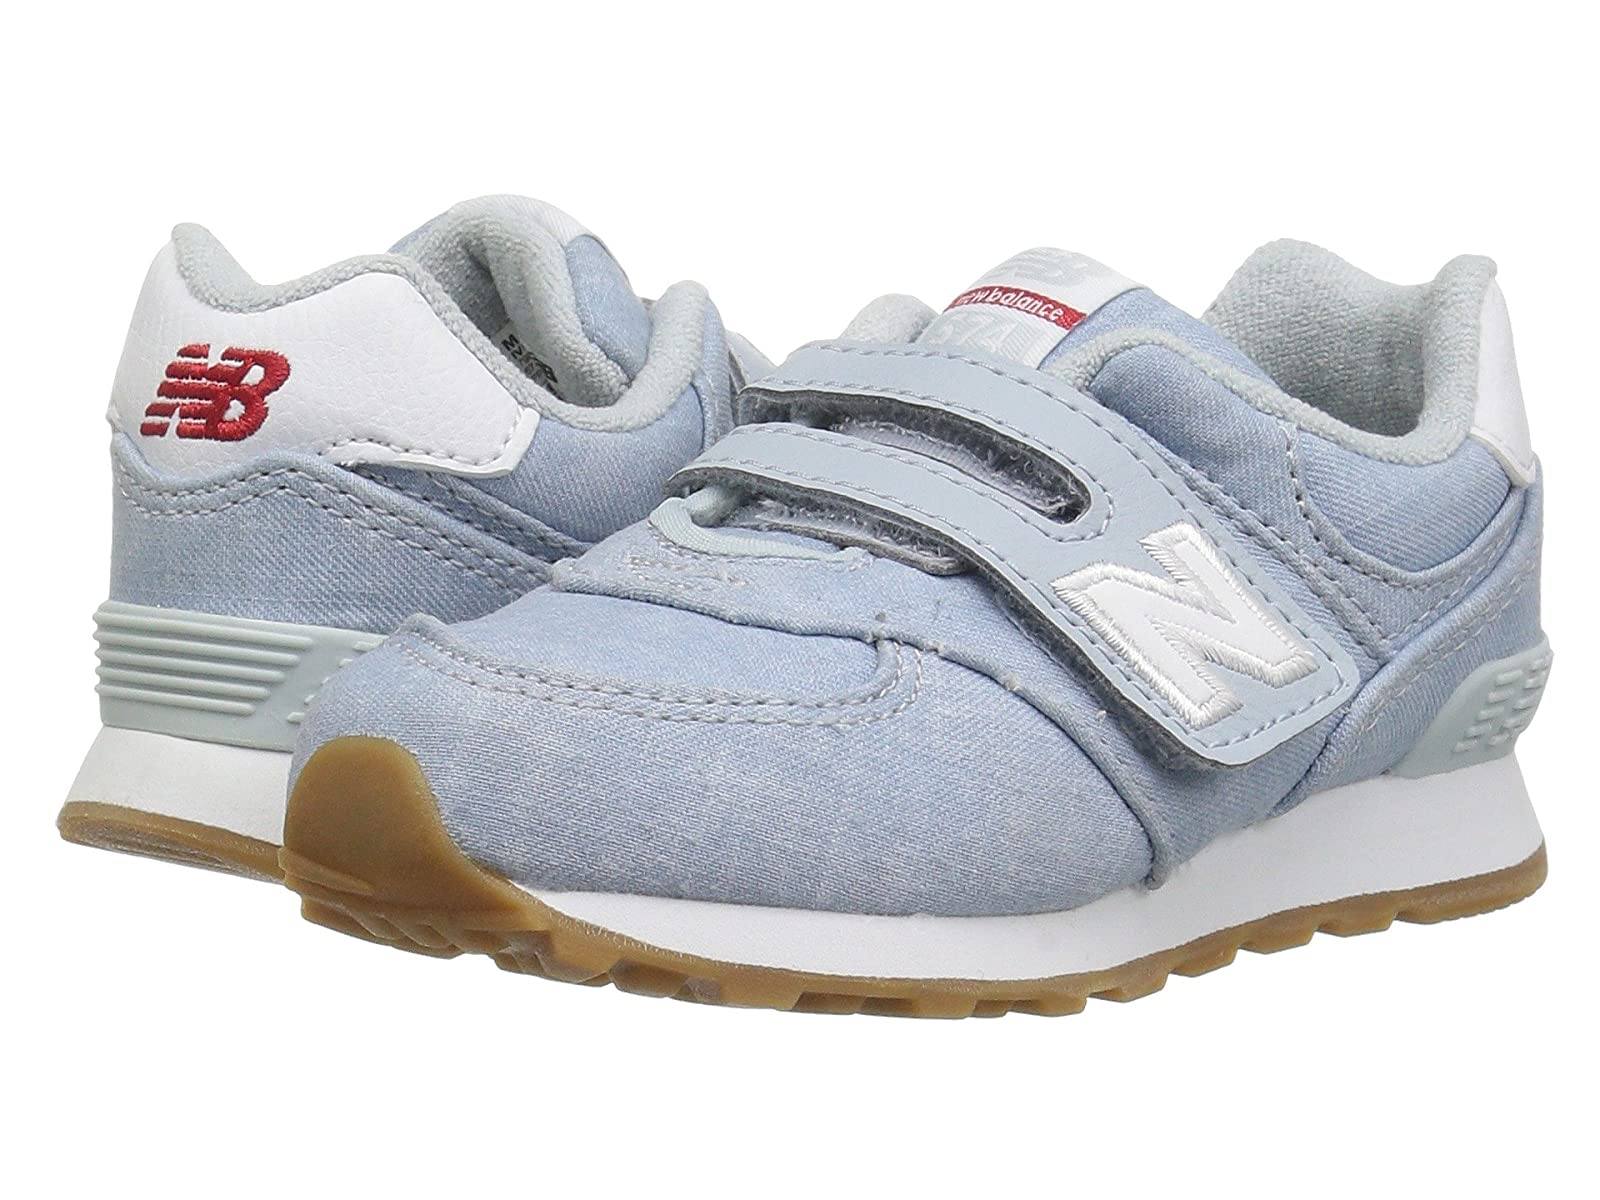 New Balance Kids IV574v1 (Infant/Toddler)Cheap and distinctive eye-catching shoes